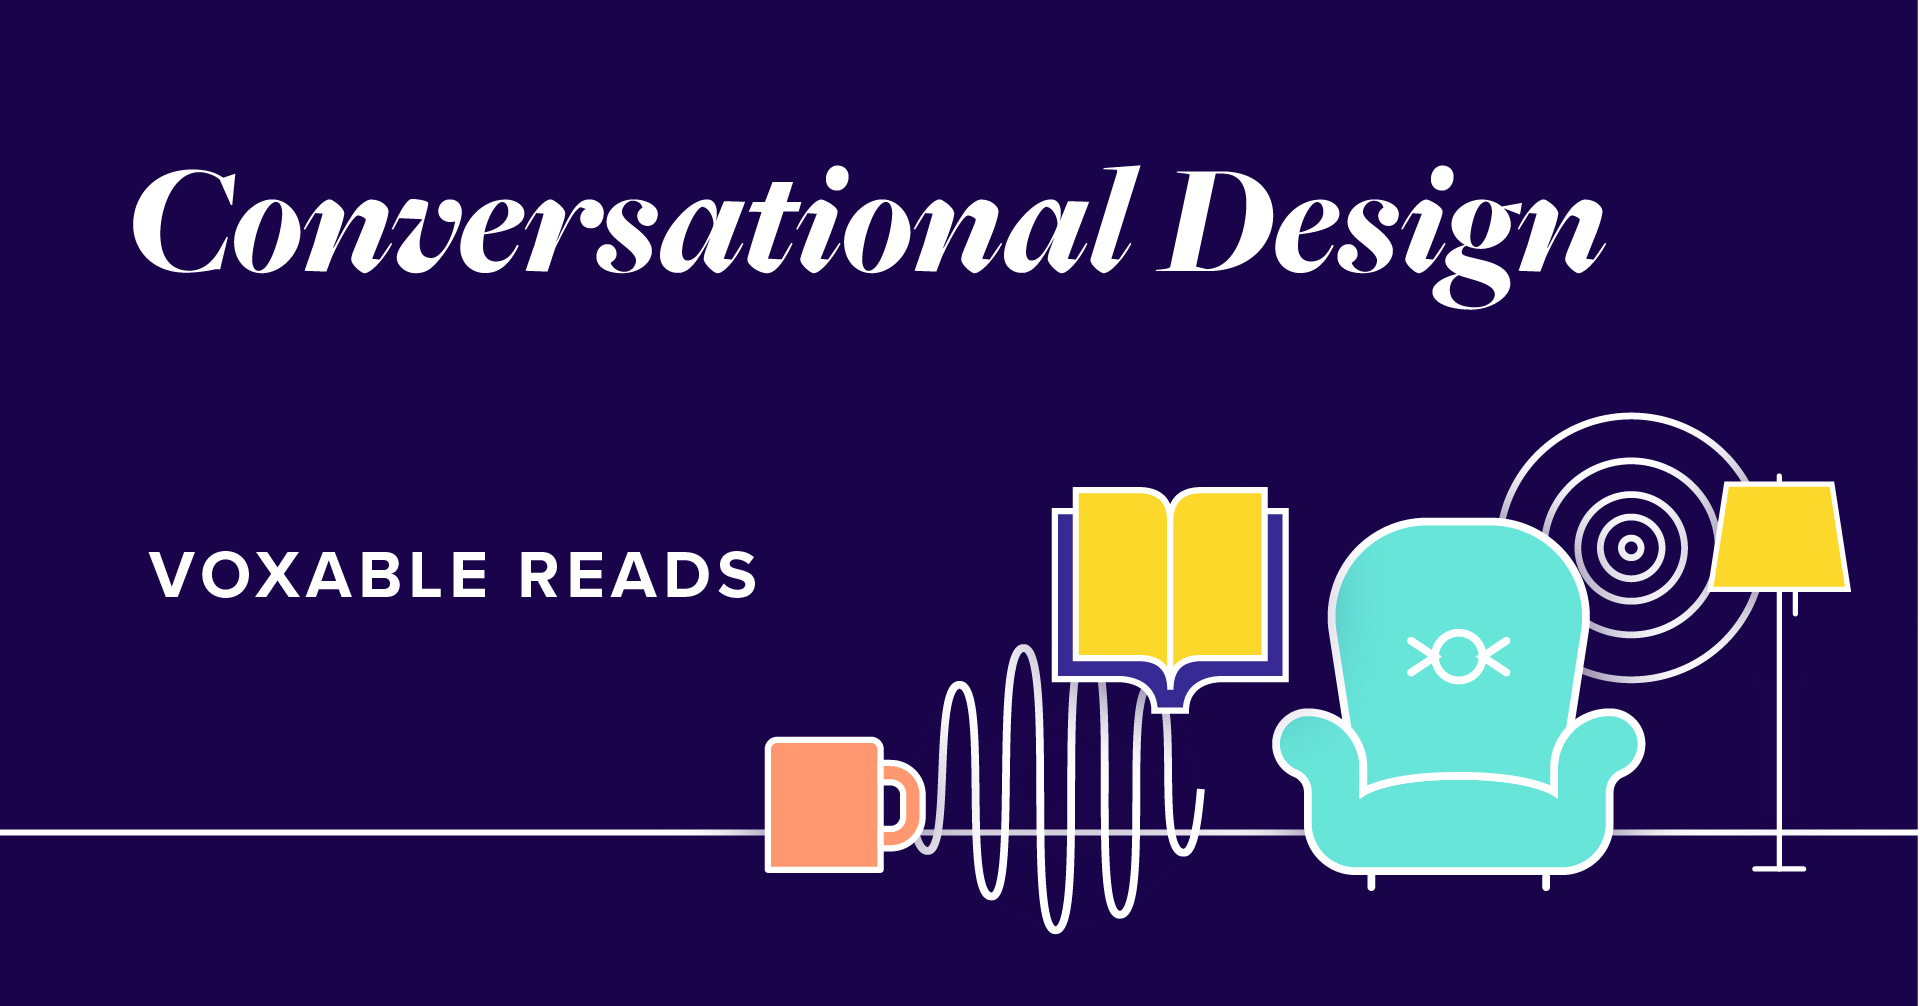 Voxable Reads: Conversational Design